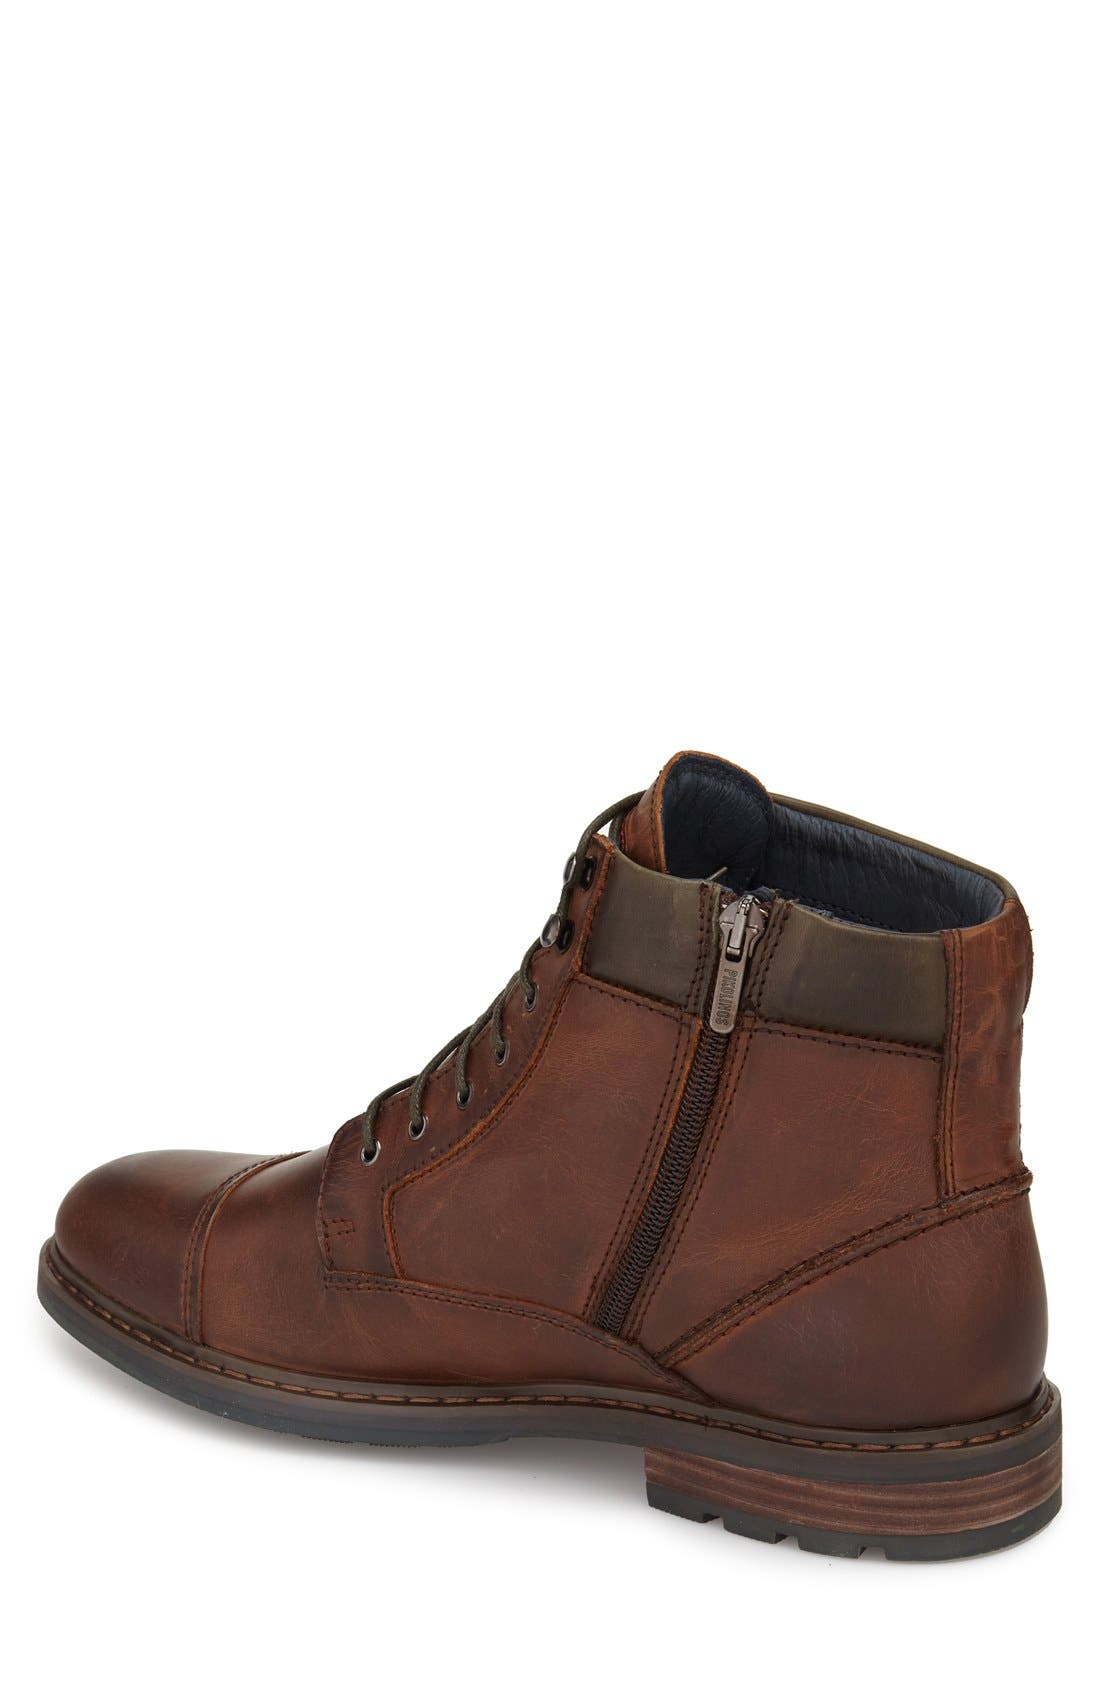 'Cacers' Lace-Up Zip Boot,                             Alternate thumbnail 5, color,